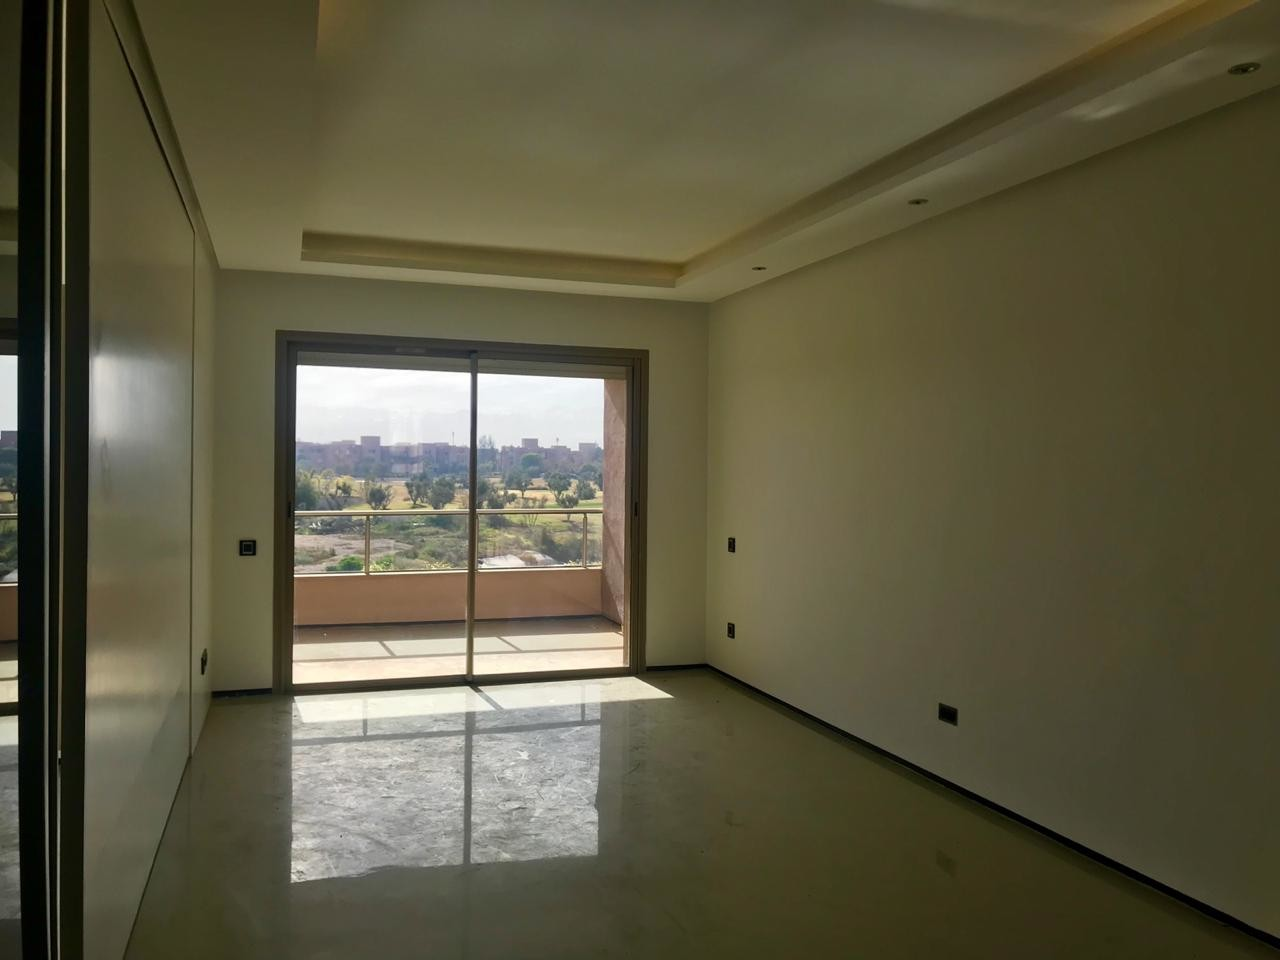 Vente <strong>Appartement</strong> Marrakech Agdal <strong>85 m2</strong>